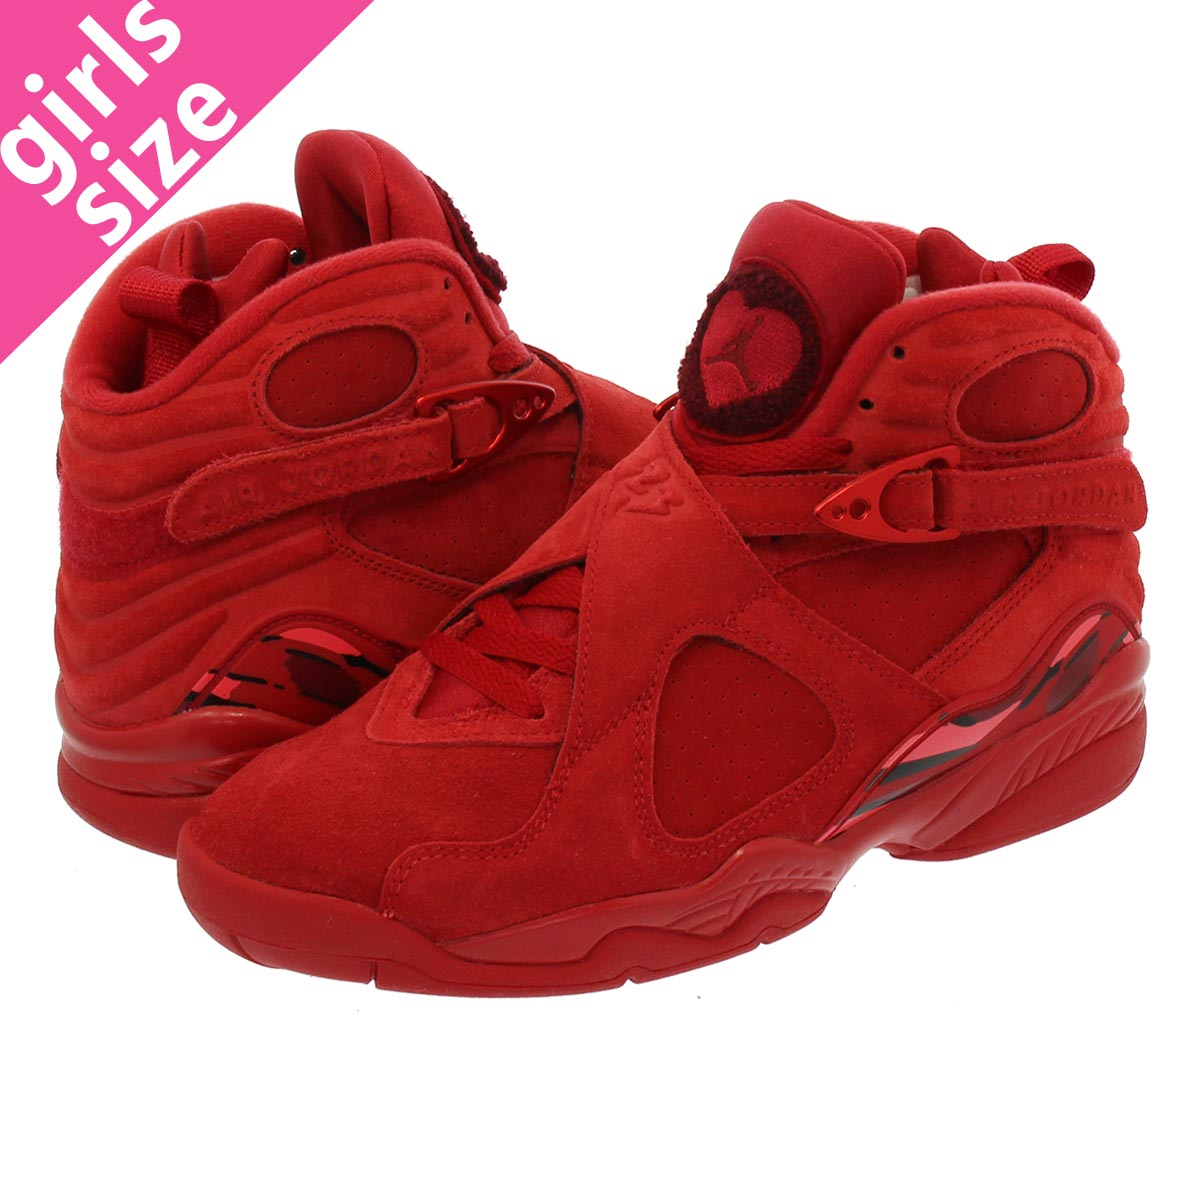 top fashion aa66a 23985 NIKE WMNS AIR JORDAN 8 RETRO VDAY Nike women Air Jordan 8 nostalgic GYM  RED/EMBER GLOW/TEAM RED aq2449-614-l